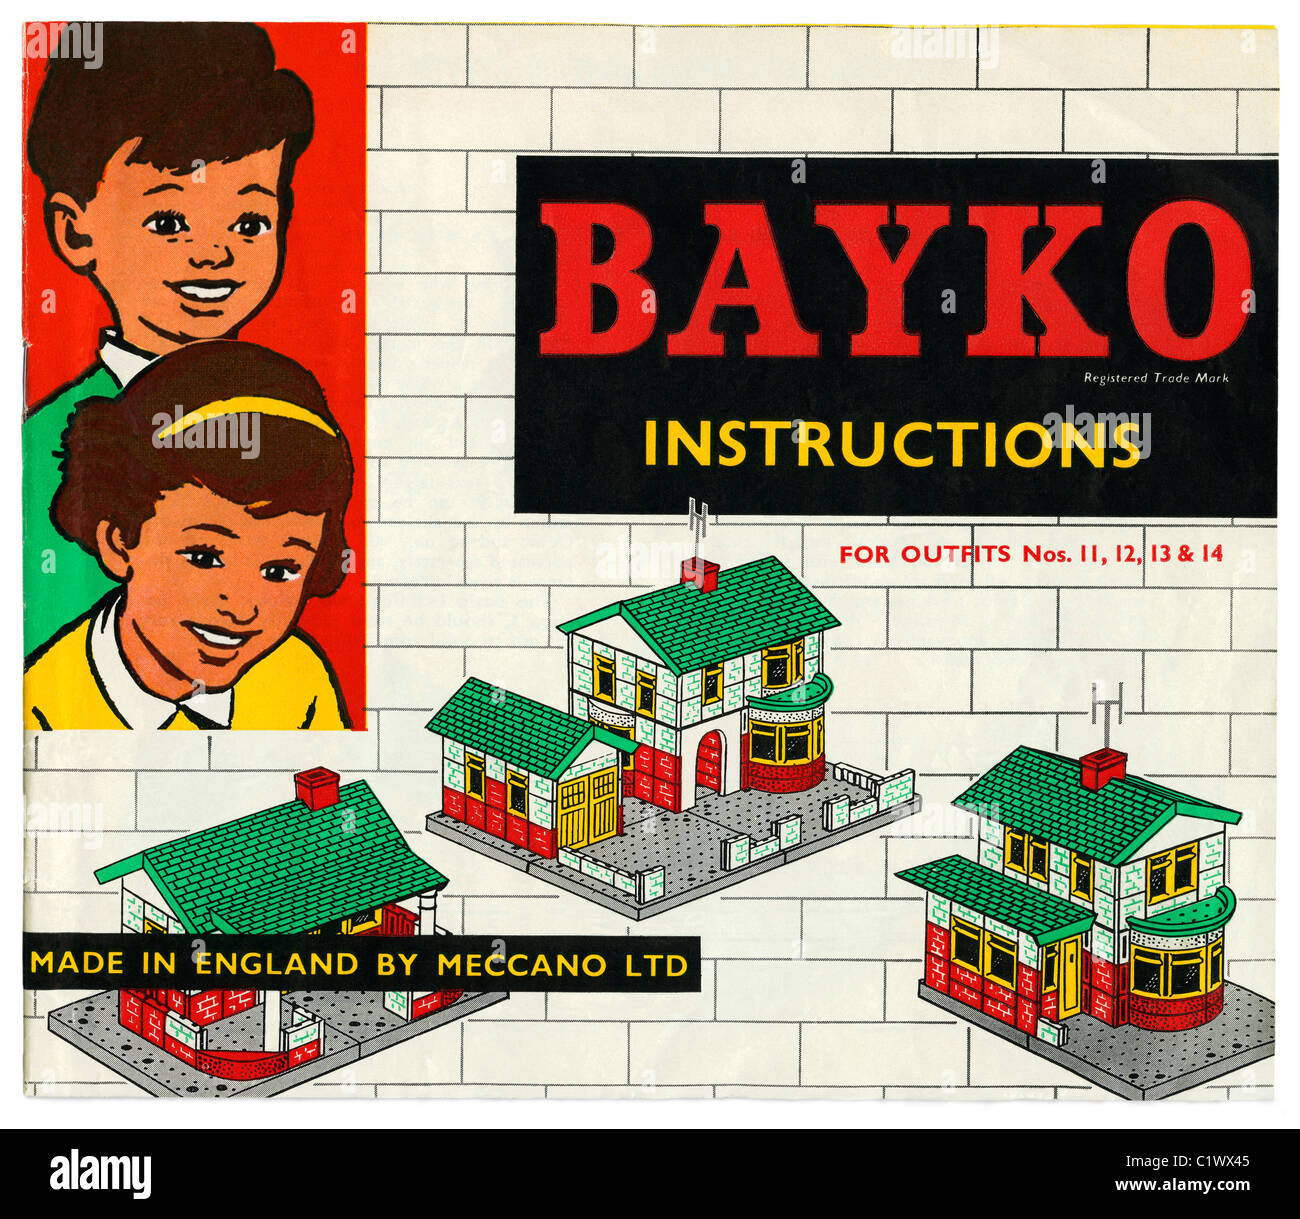 Bayko Building Set (Outfit 14) instruction book, c. 1966. - Stock Image